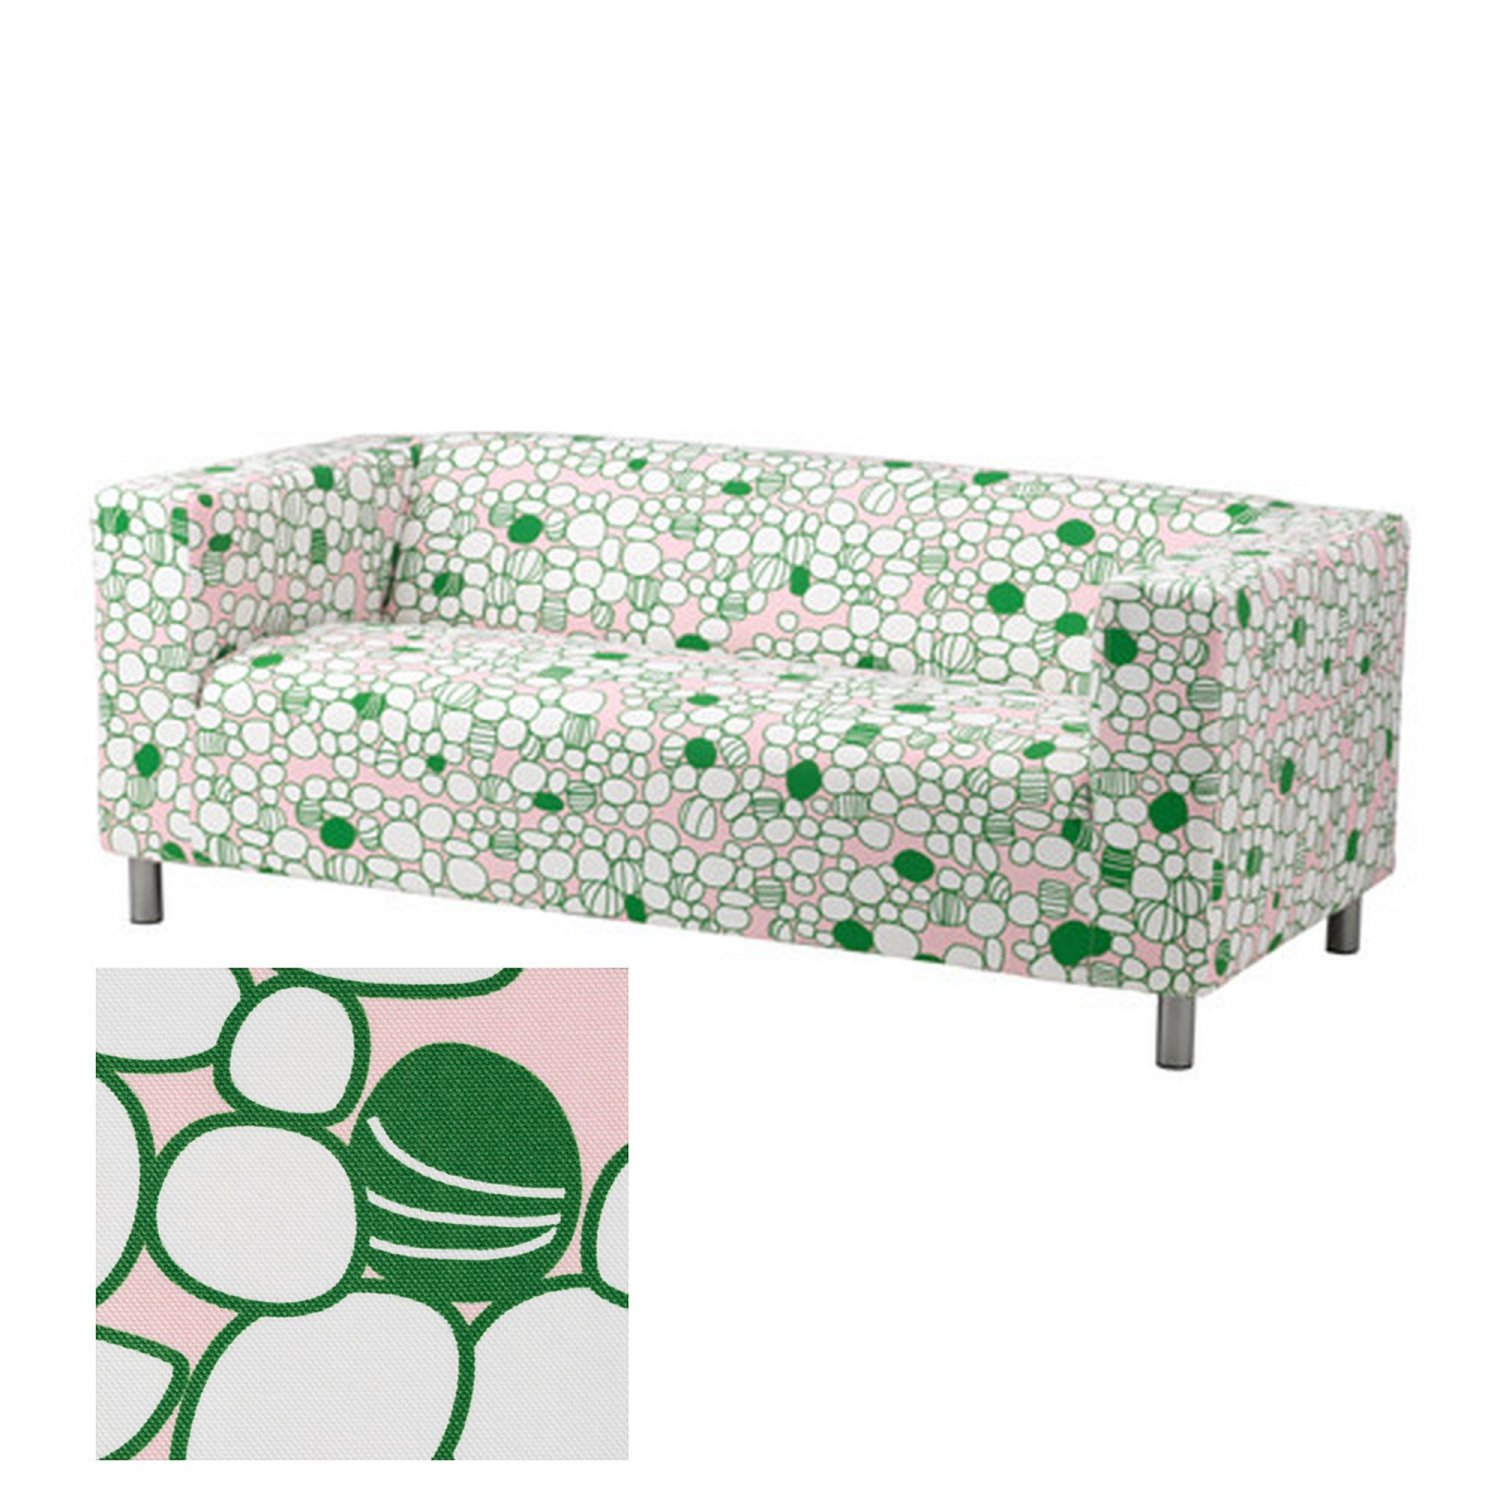 ikea klippan sofa slipcover cover green pink mod retro marrehill print limited edition. Black Bedroom Furniture Sets. Home Design Ideas